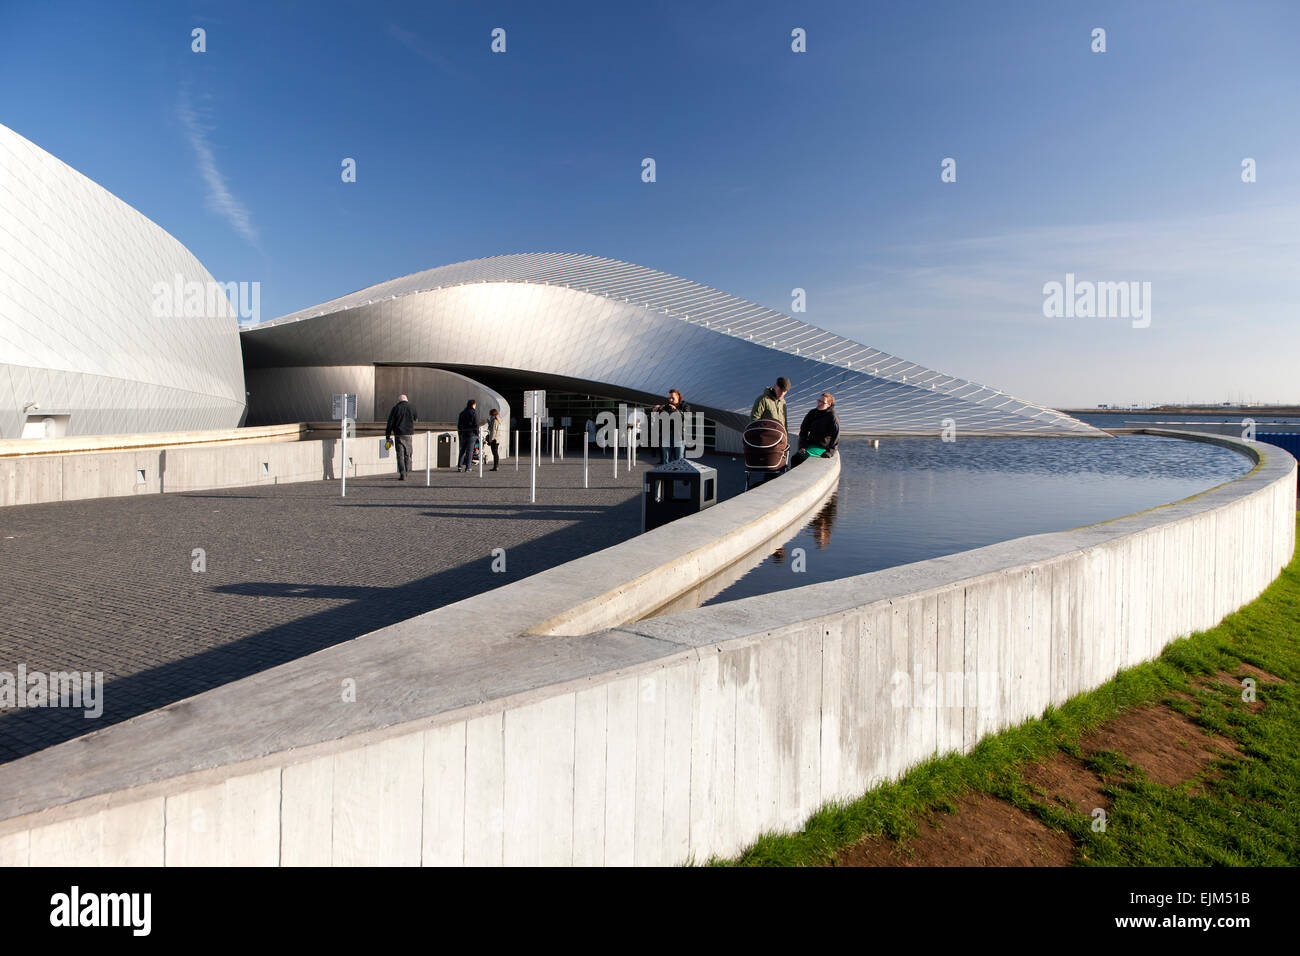 The entrance to the Blue Planet Aquarium in Copenhagen Denmark - Stock Image